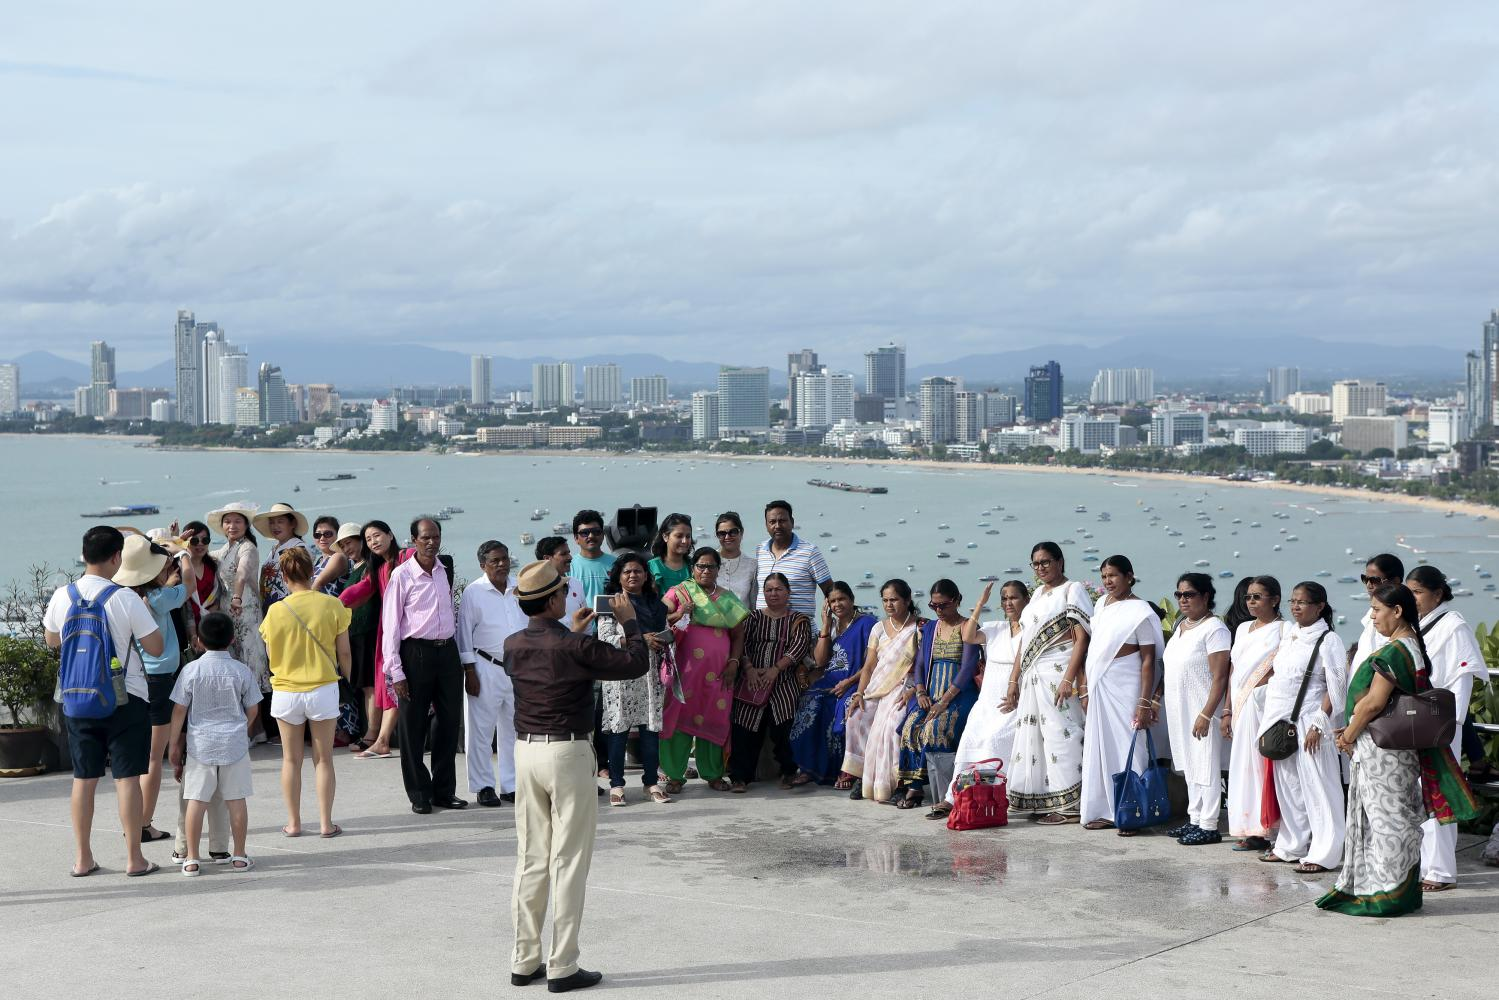 A group of Indian tourists pose for pictures at Phra Tamnak Hill in Pattaya. Photo: Patipat Janthong